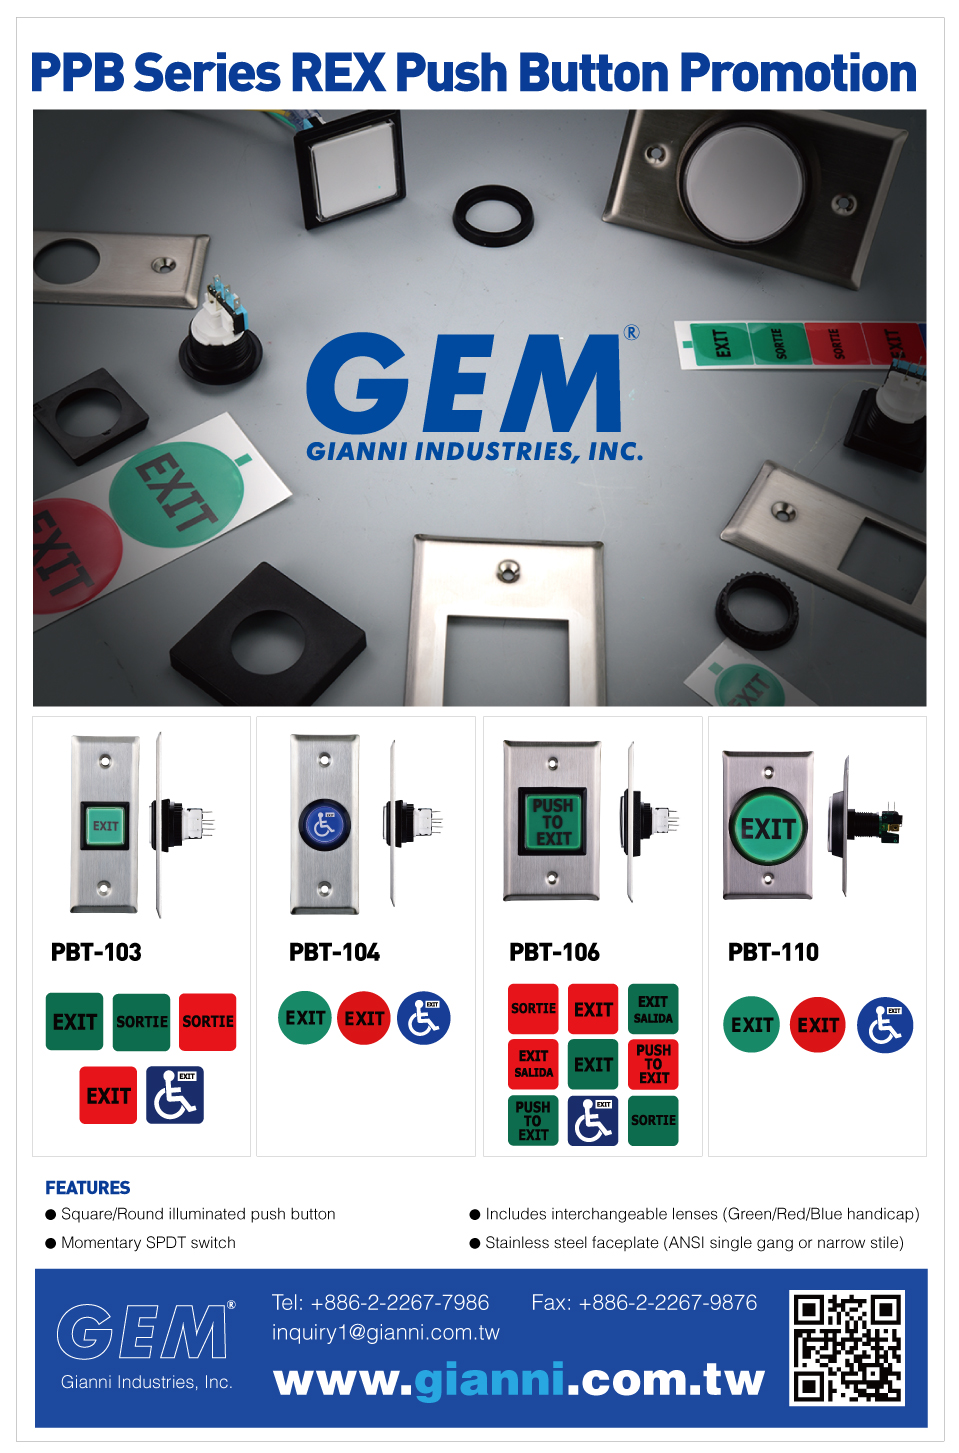 Gem Gianni Industries Inc Push Button 5mm Ansi Illuminated 1 7 16 36mm Square Operating Voltage 12 Vdc Momentary Spdt 3a 125 Or 250vac